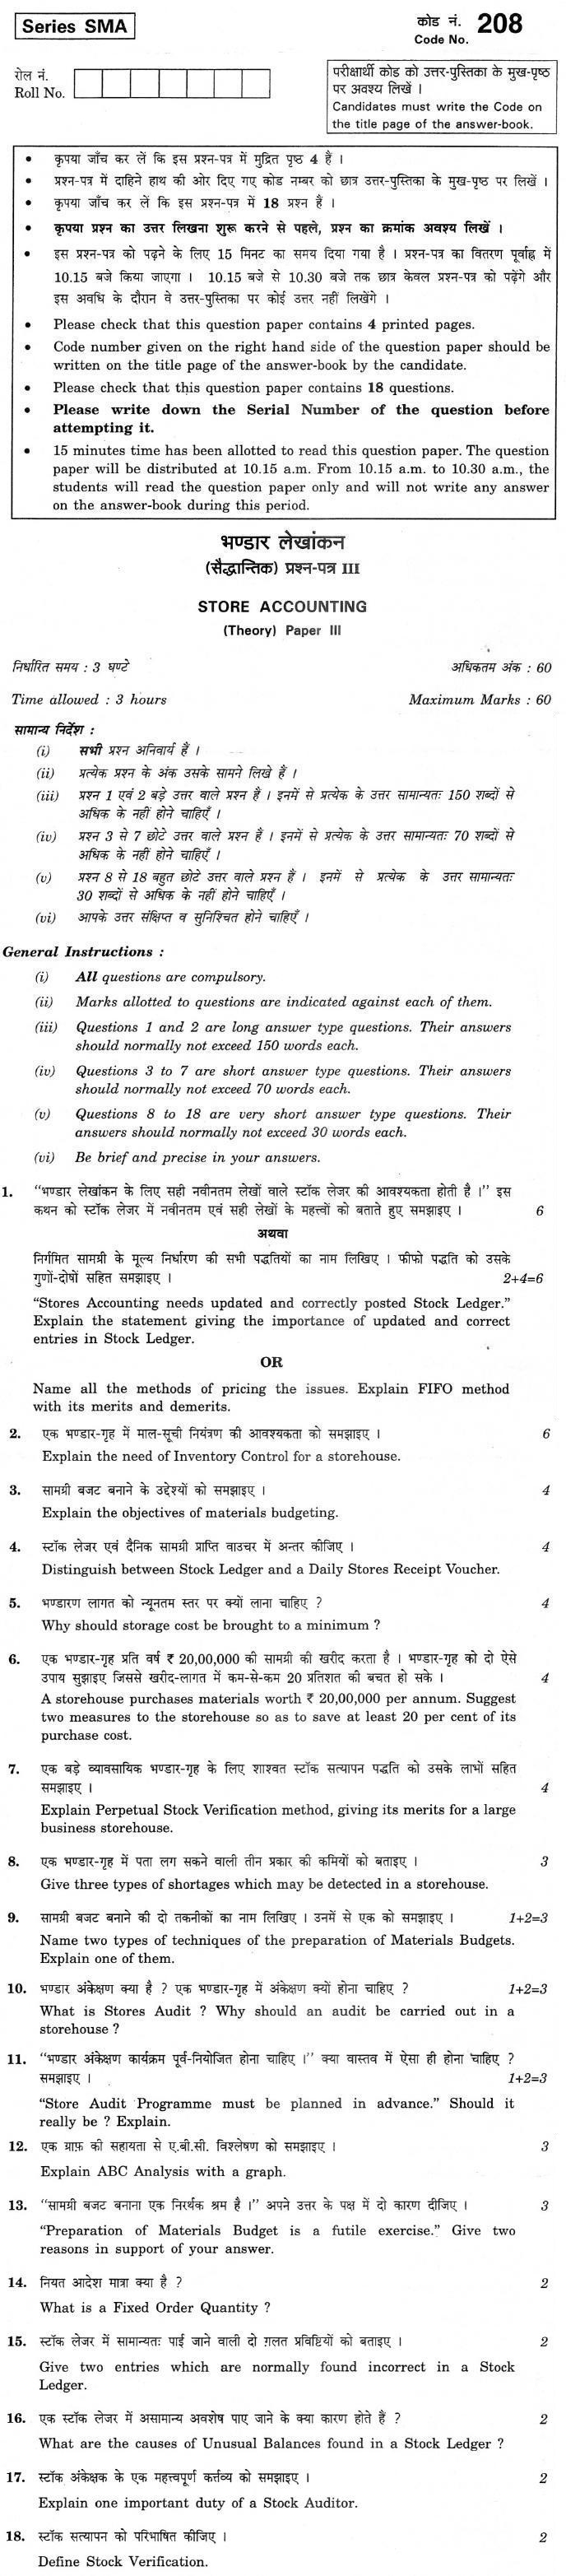 CBSE Class XII Previous Year Question Paper 2012 Store Accounting Paper III